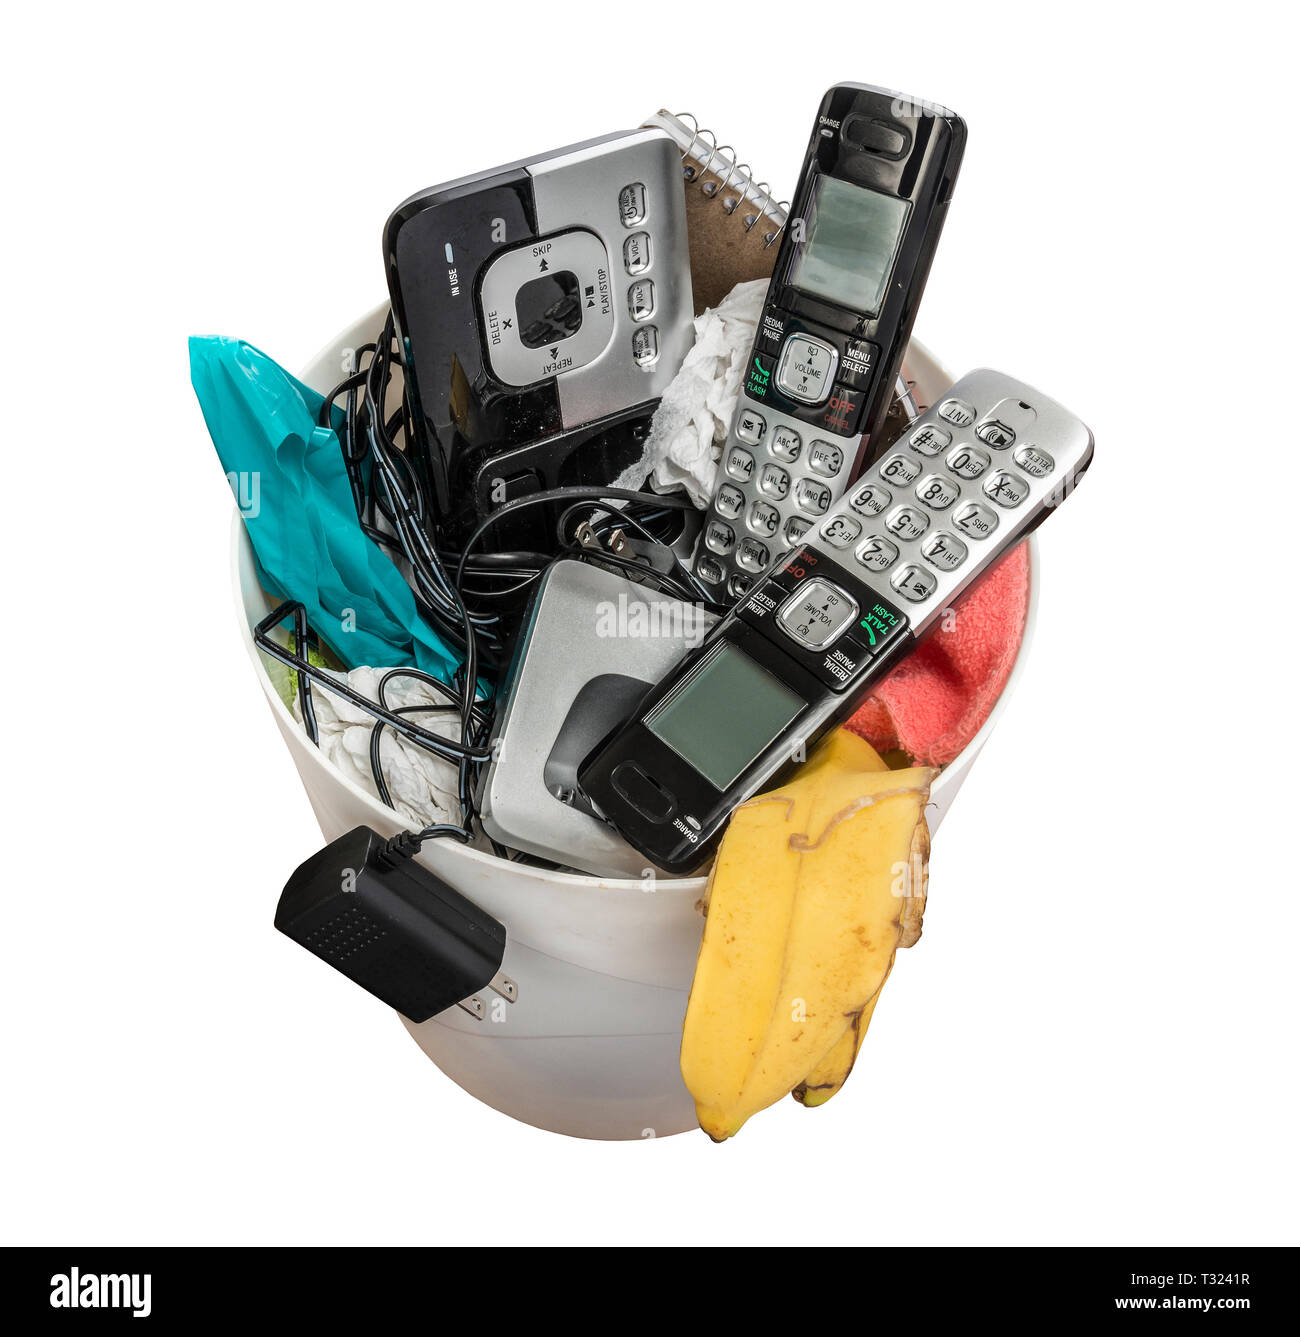 Horizontal shot of land line telephones thrown away in a trashcan.  This shot is looking down on the trashcan. Stock Photo